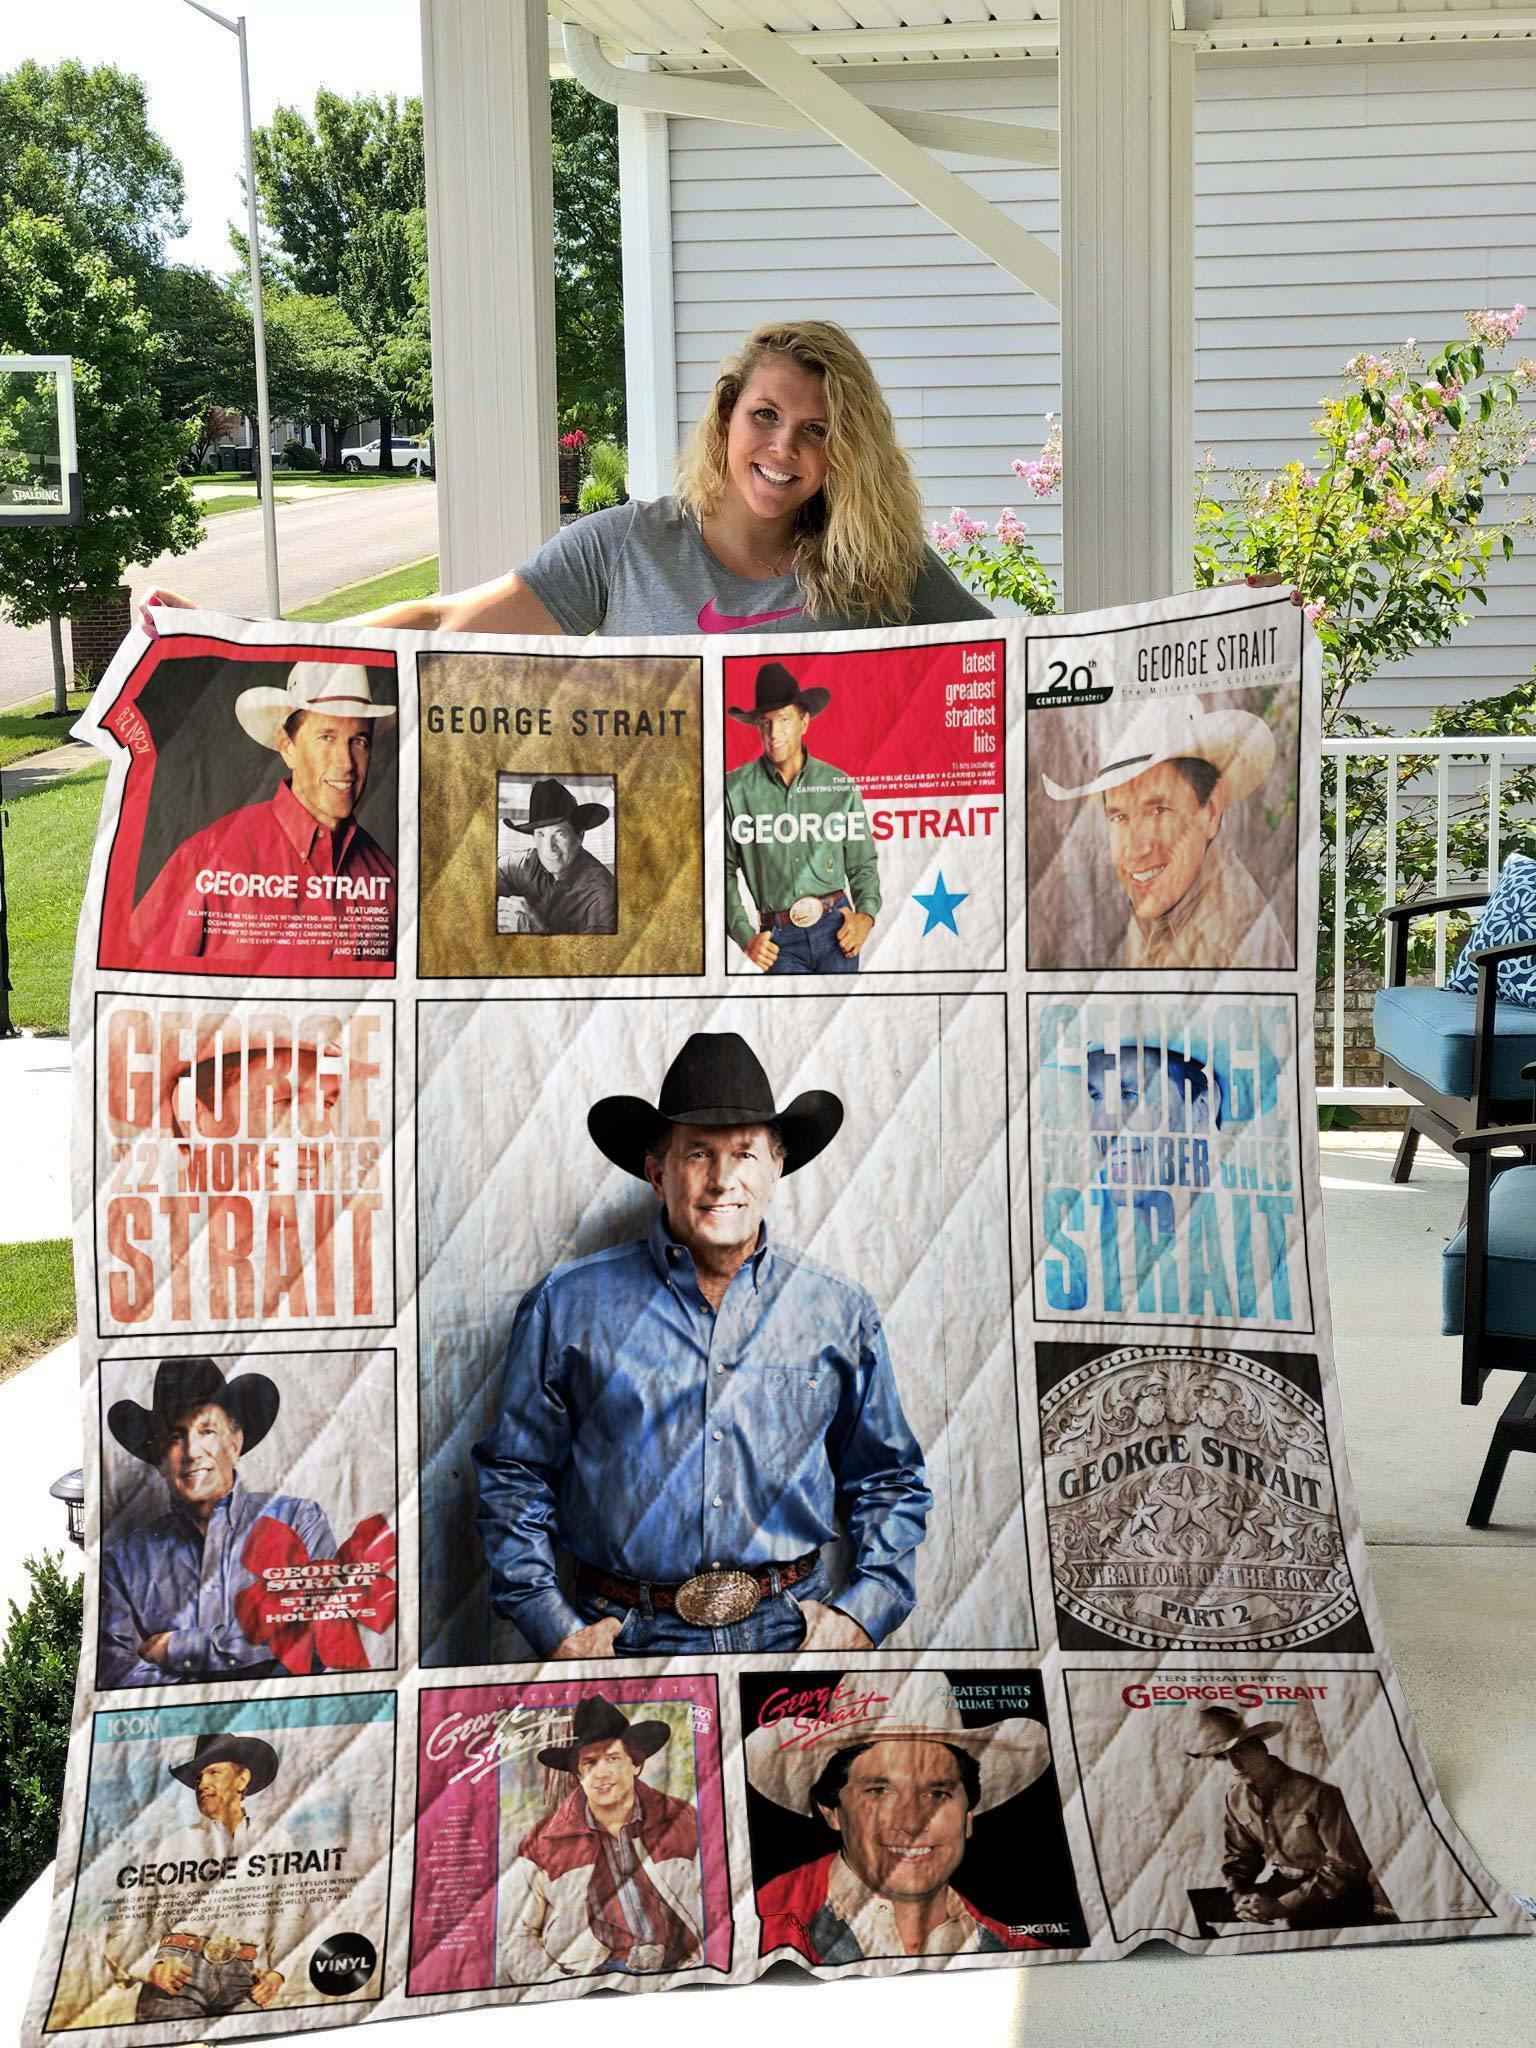 George strait complication albums quilt 3